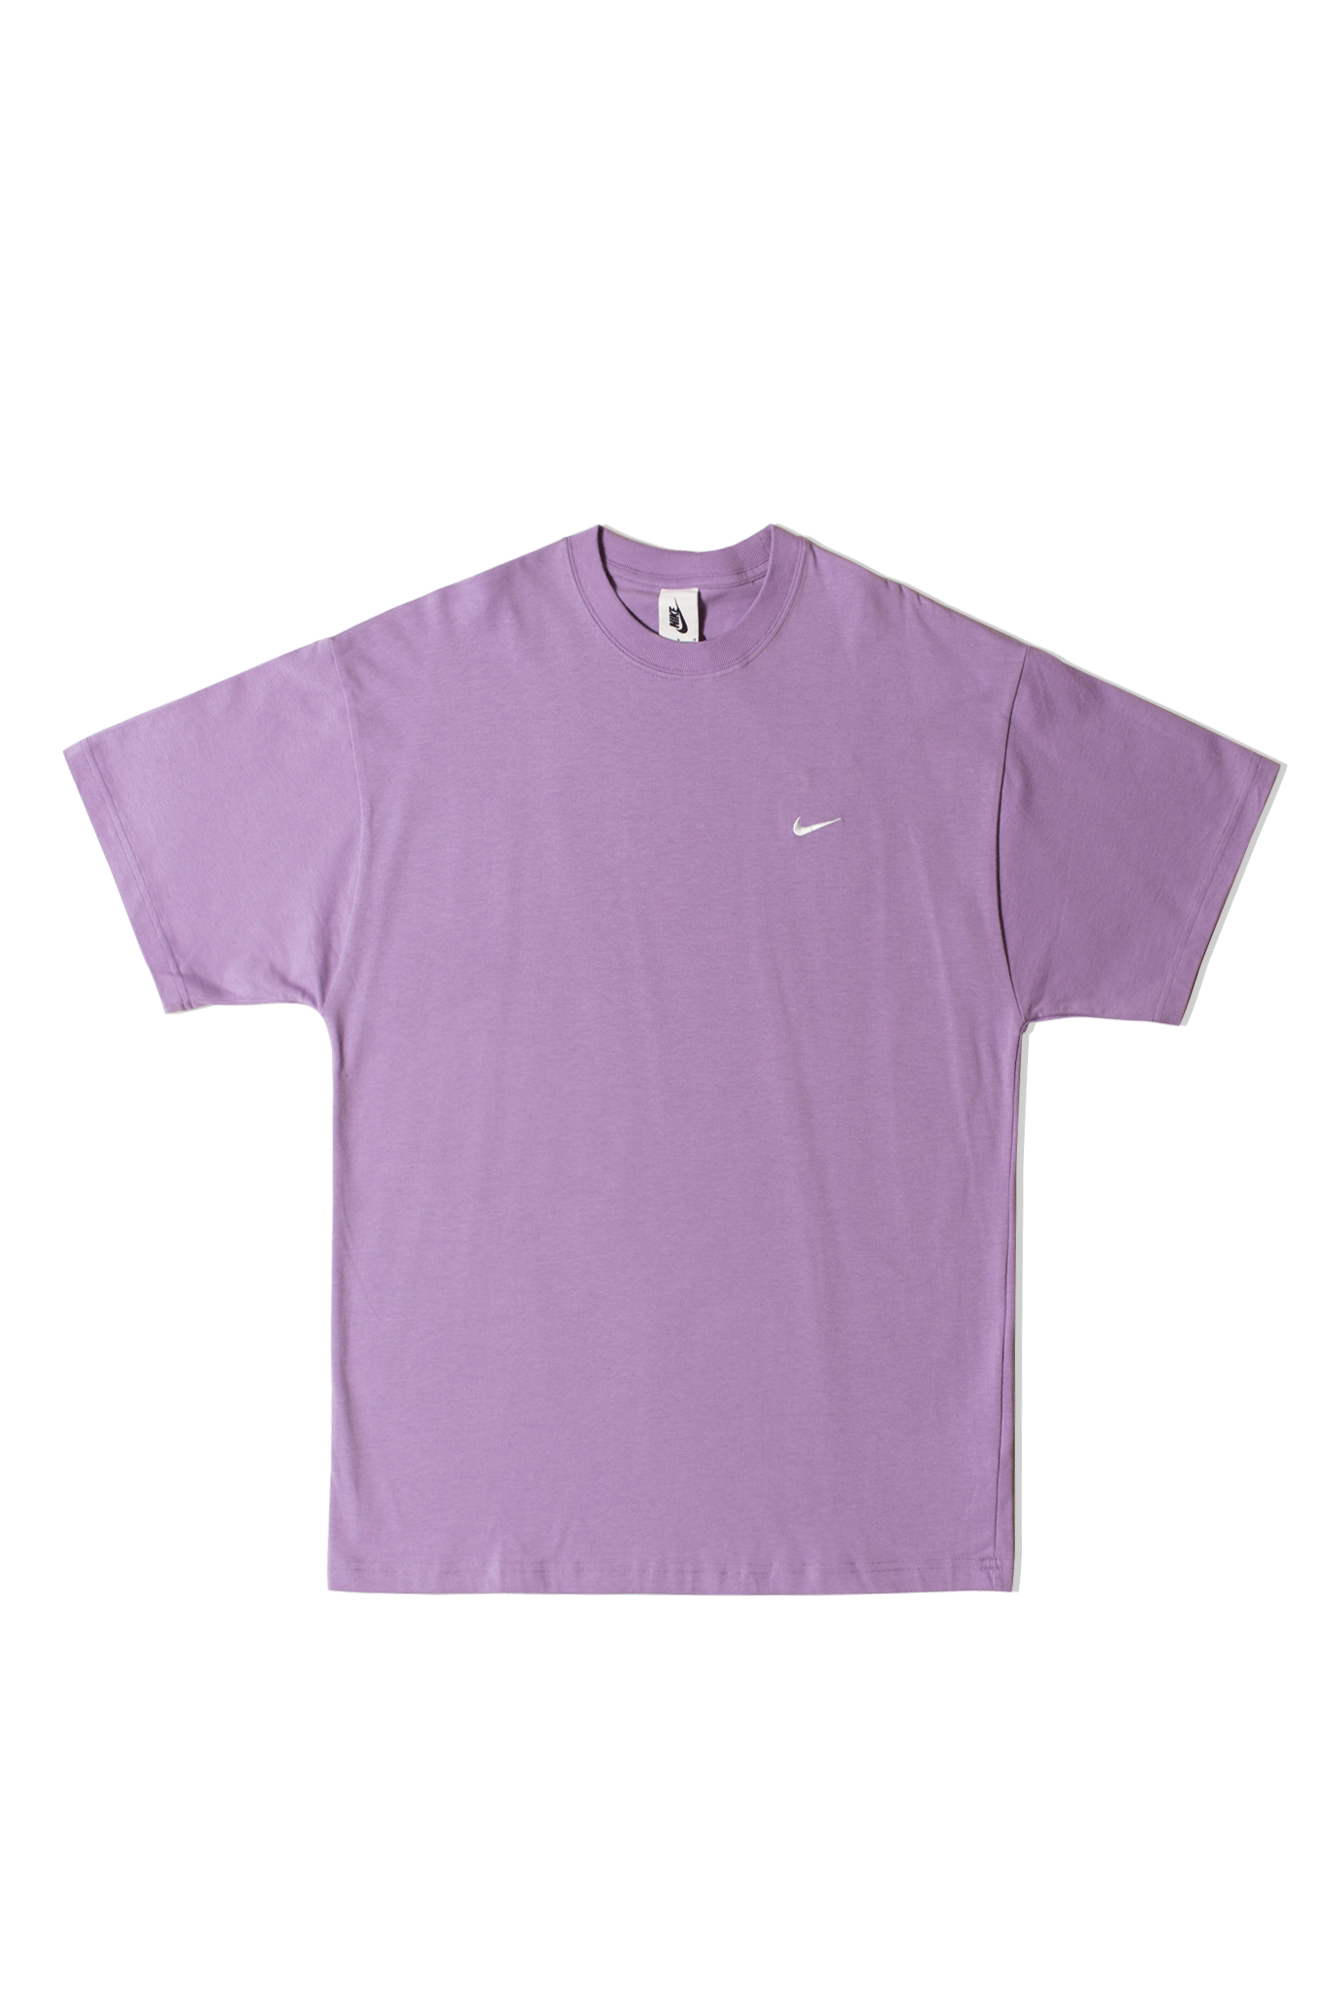 Nike T-Shirts M NRG SlowSwoosh T-Shirt Viola CV0559-#000#563#XS - One Block Down